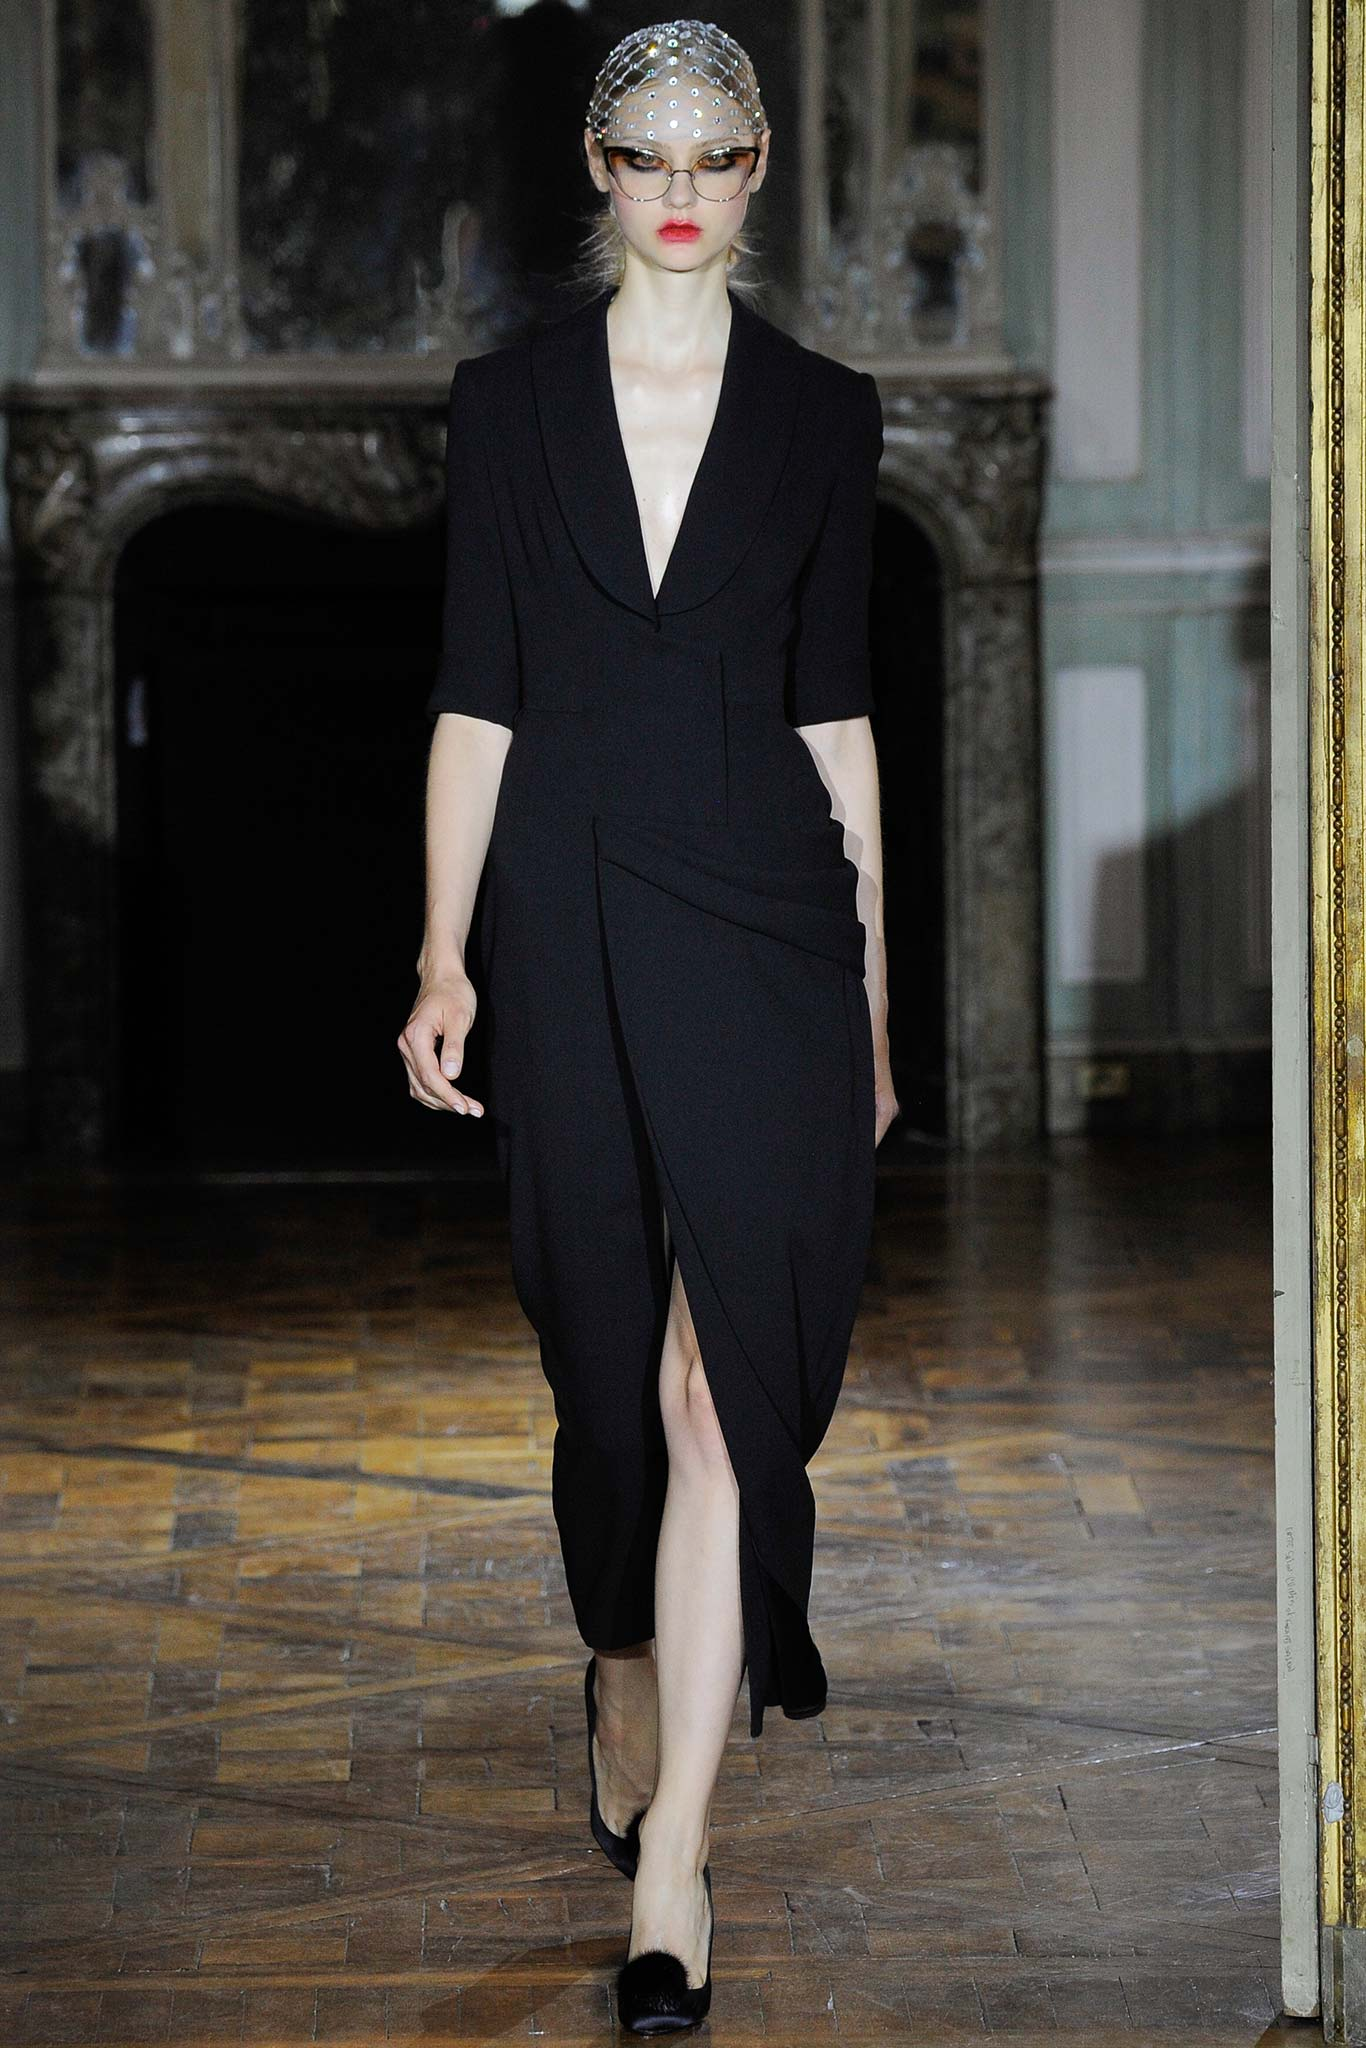 Just in: Complete runway images from Ulyana Sergeenko Fall '15 couture are here: http://t.co/65CU3WvH1S http://t.co/MCRIDr6b3M